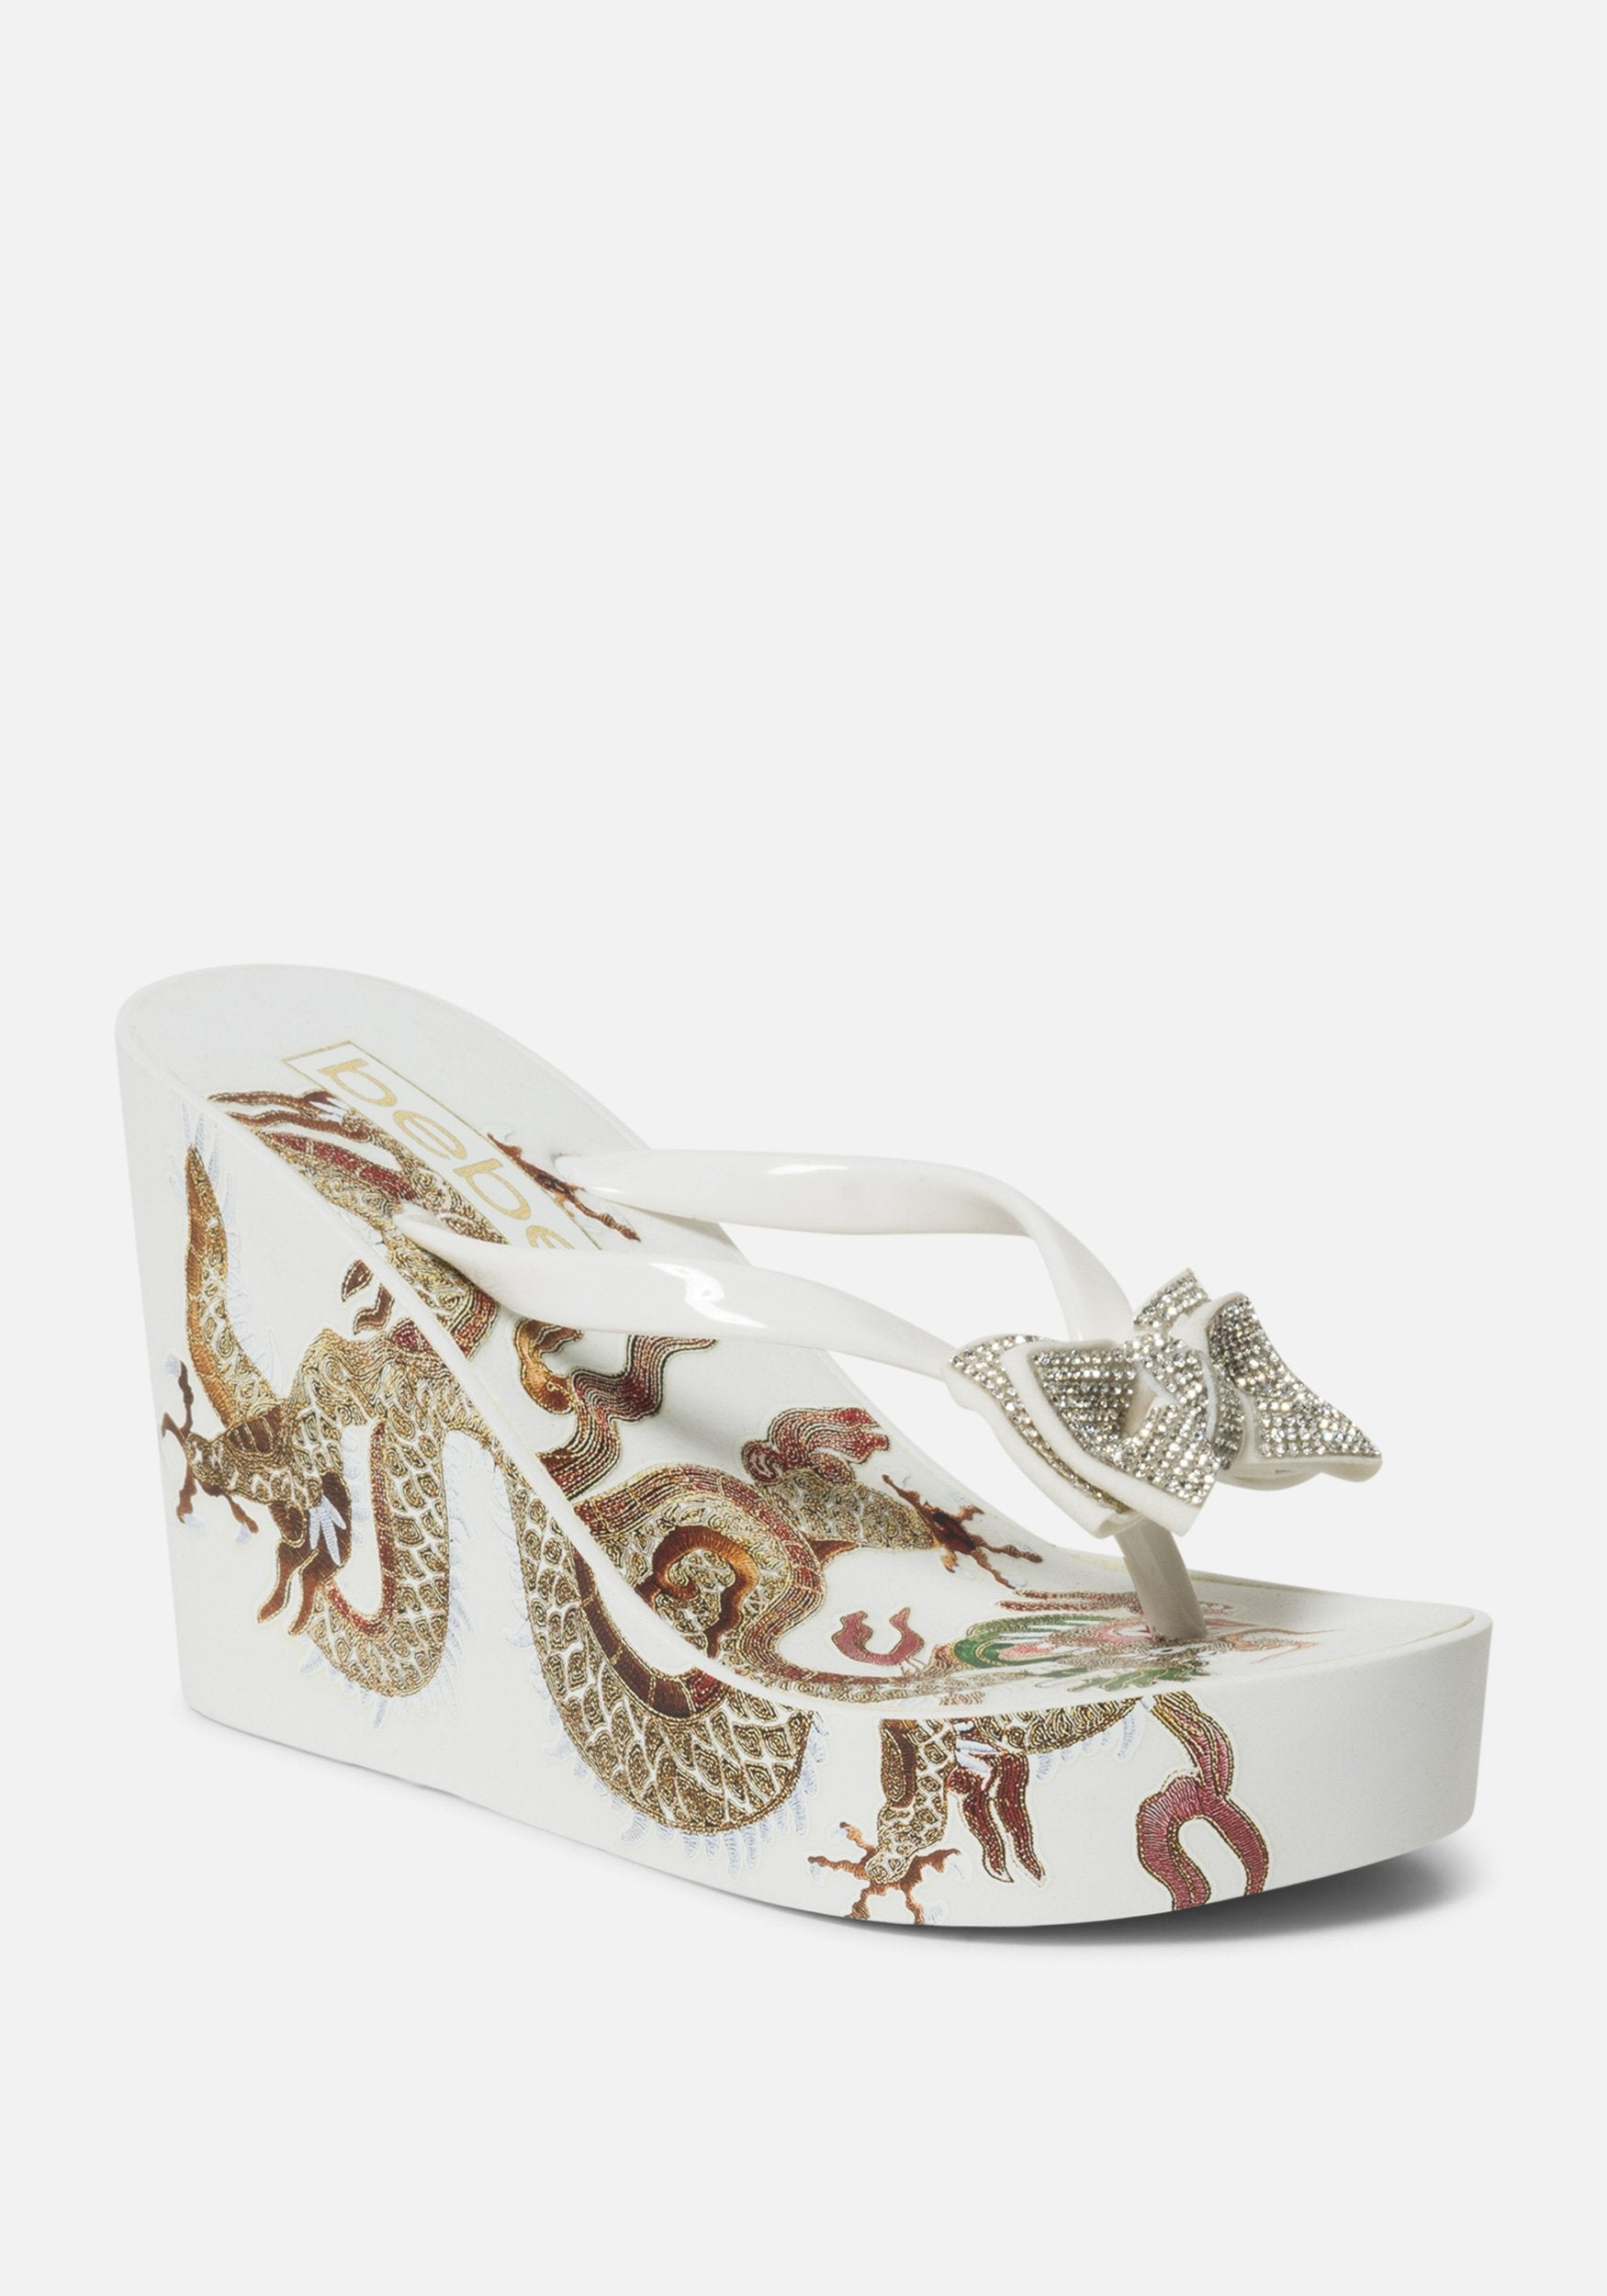 Bebe Women's Alaya Dragon Wedge Sandal, Size 6 in WHITE Synthetic